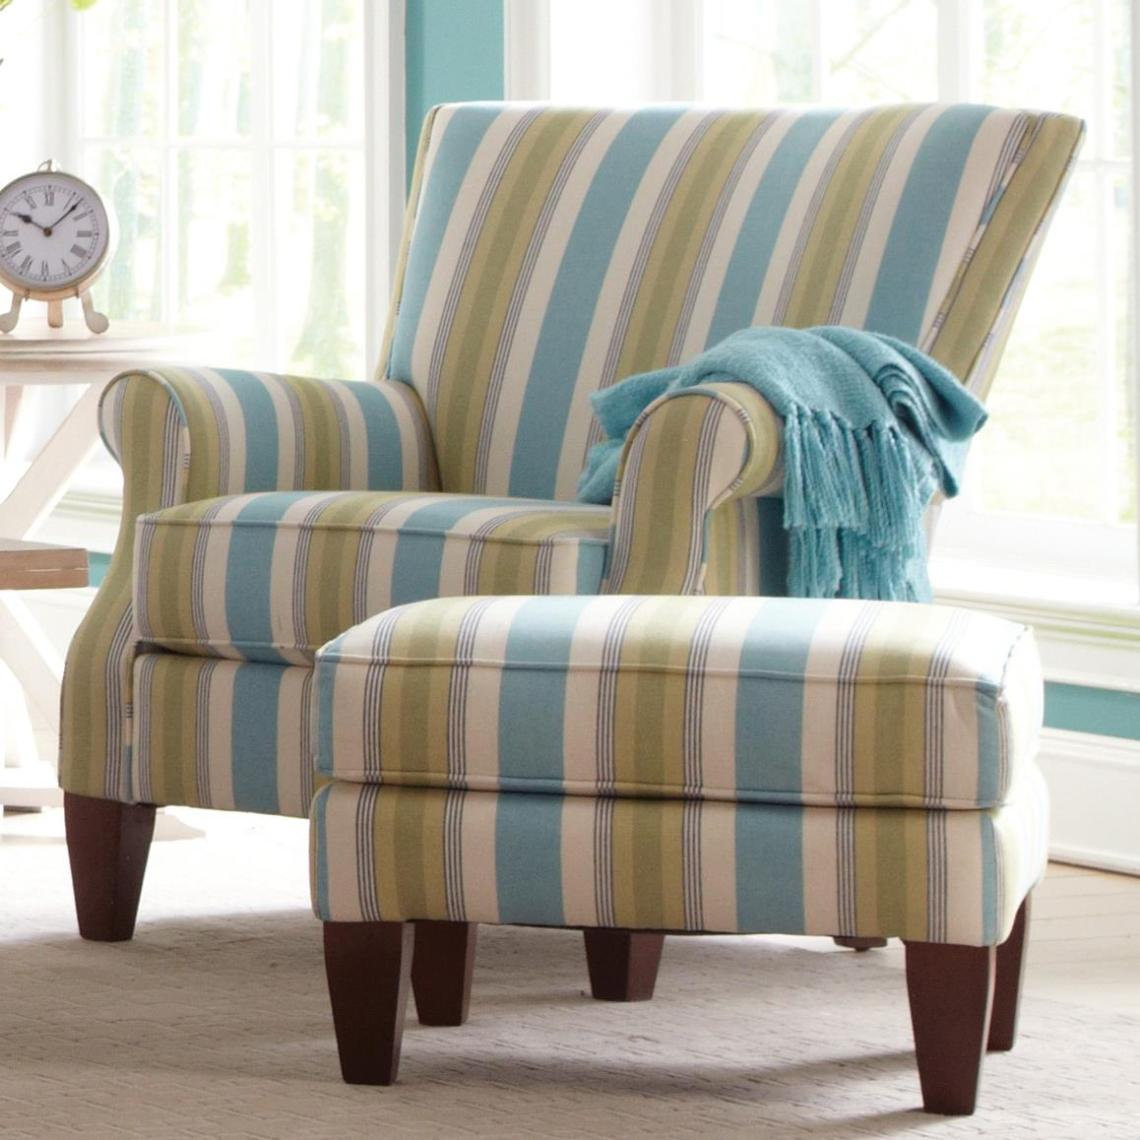 Craftmaster Accent Chairs Contemporary Chair and Ottoman ...